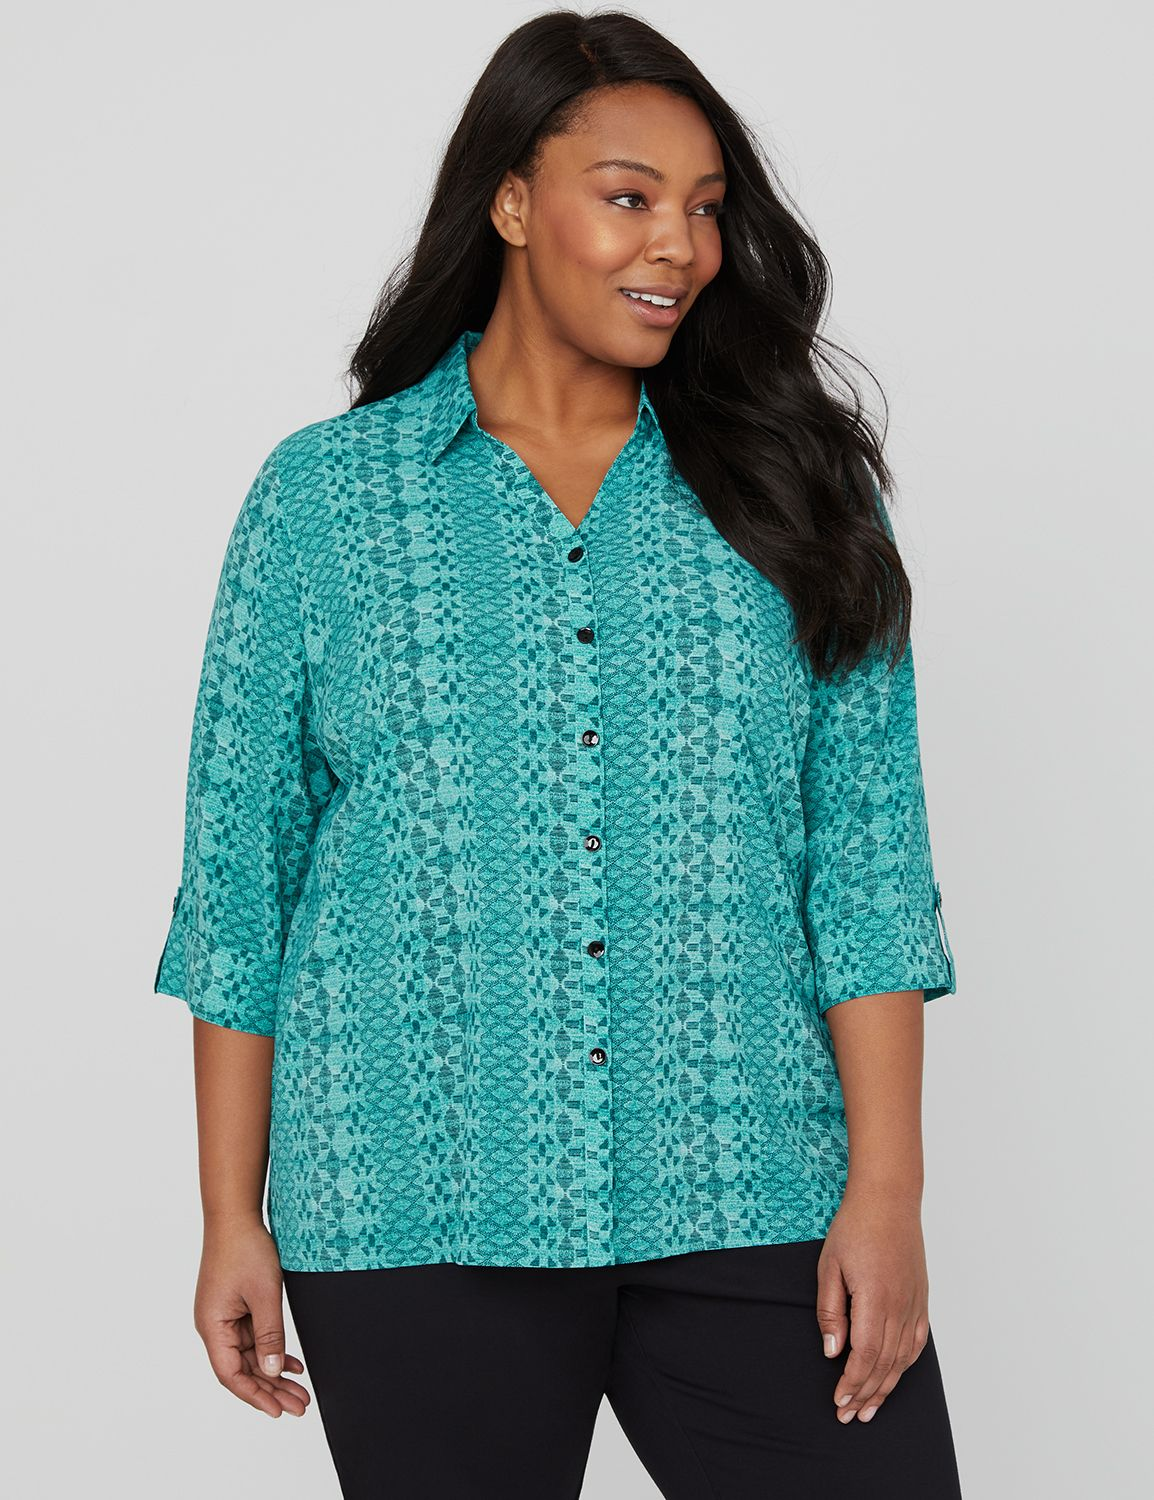 Maldives Buttonfront Shirt 3/4 Slv Collared CDC Blouse MP-300104924